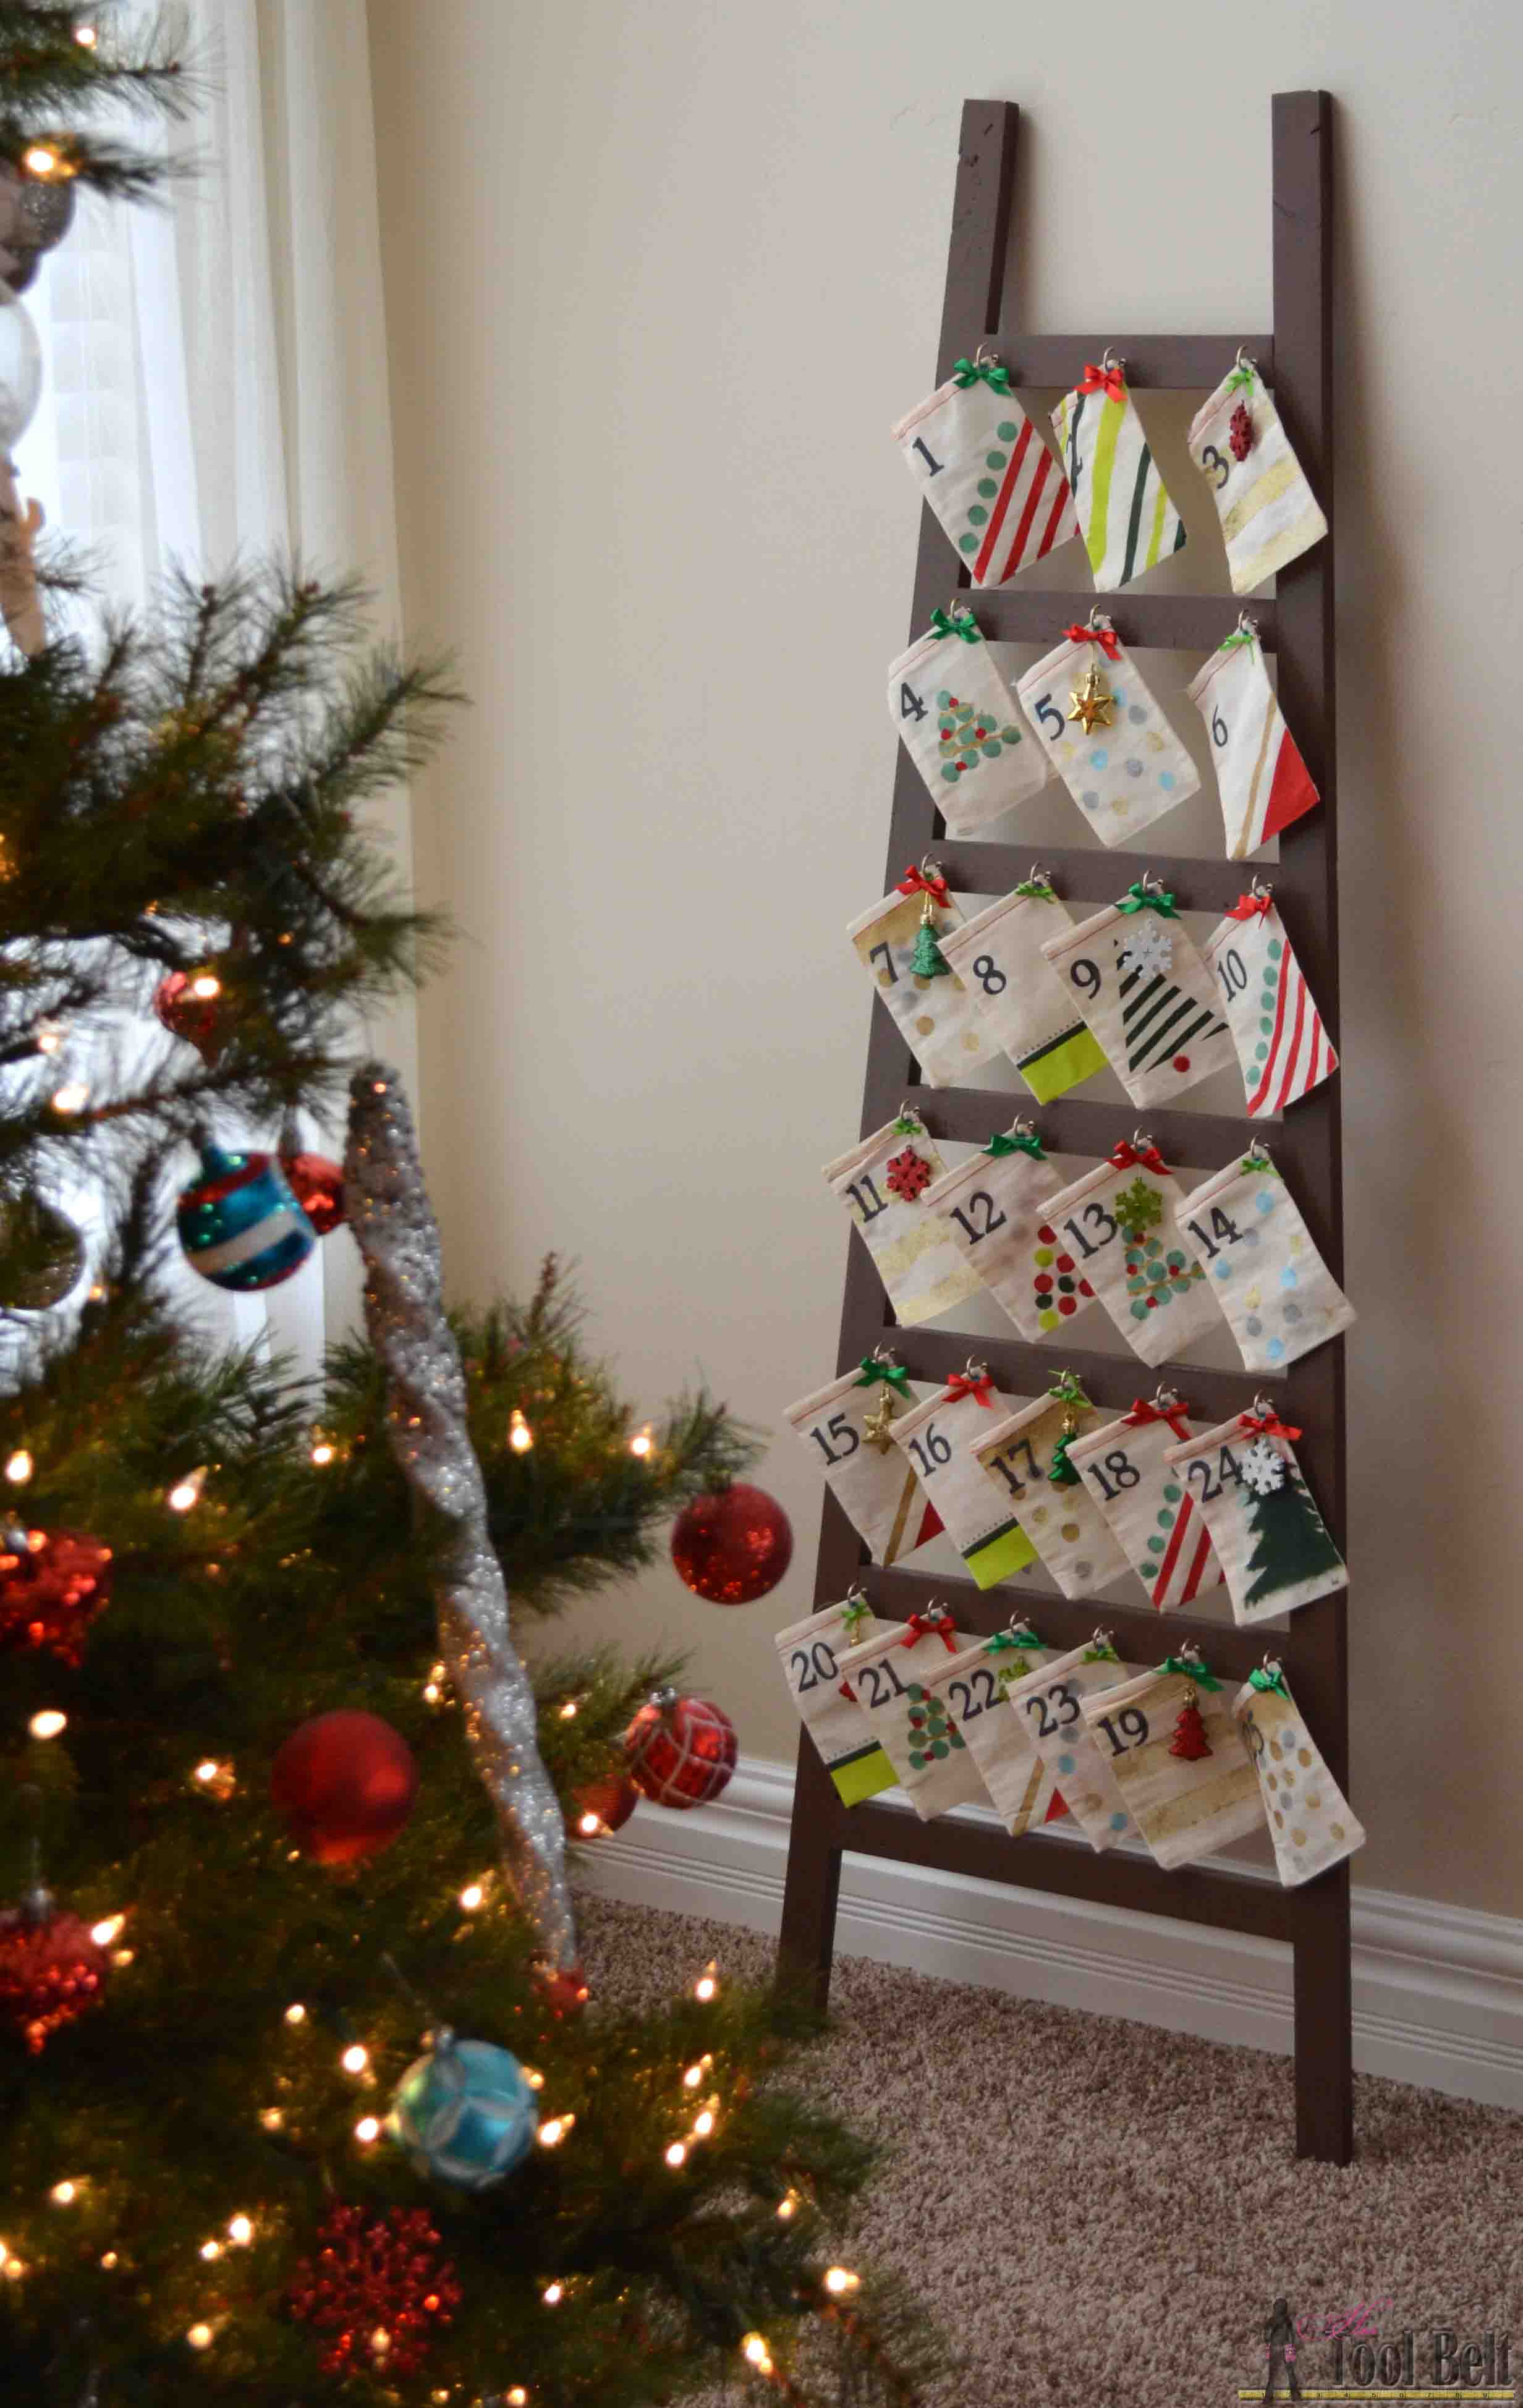 Ladder advent calendar her tool belt ladder advent calendar solutioingenieria